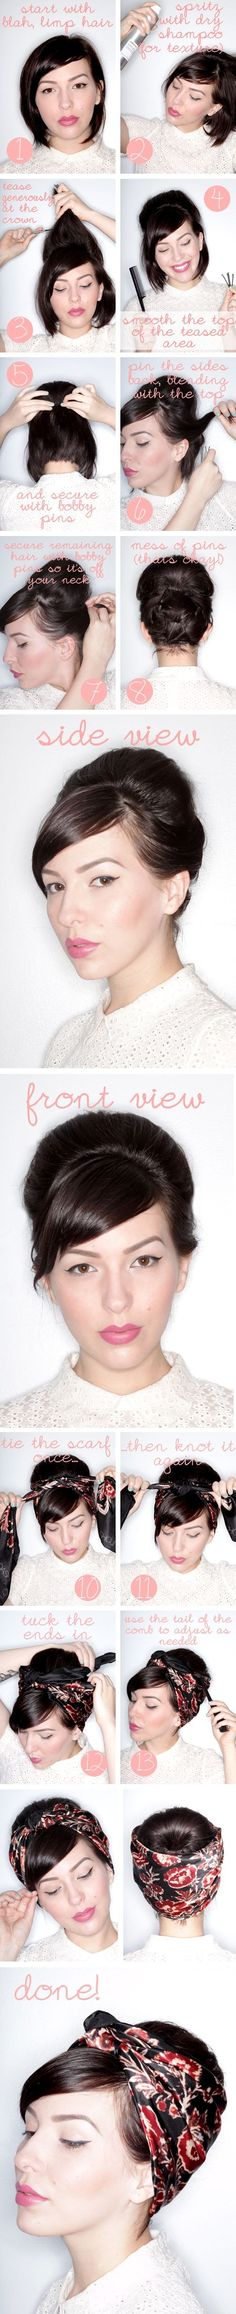 Faux Updo Tutorial For Short Hair by AislingH